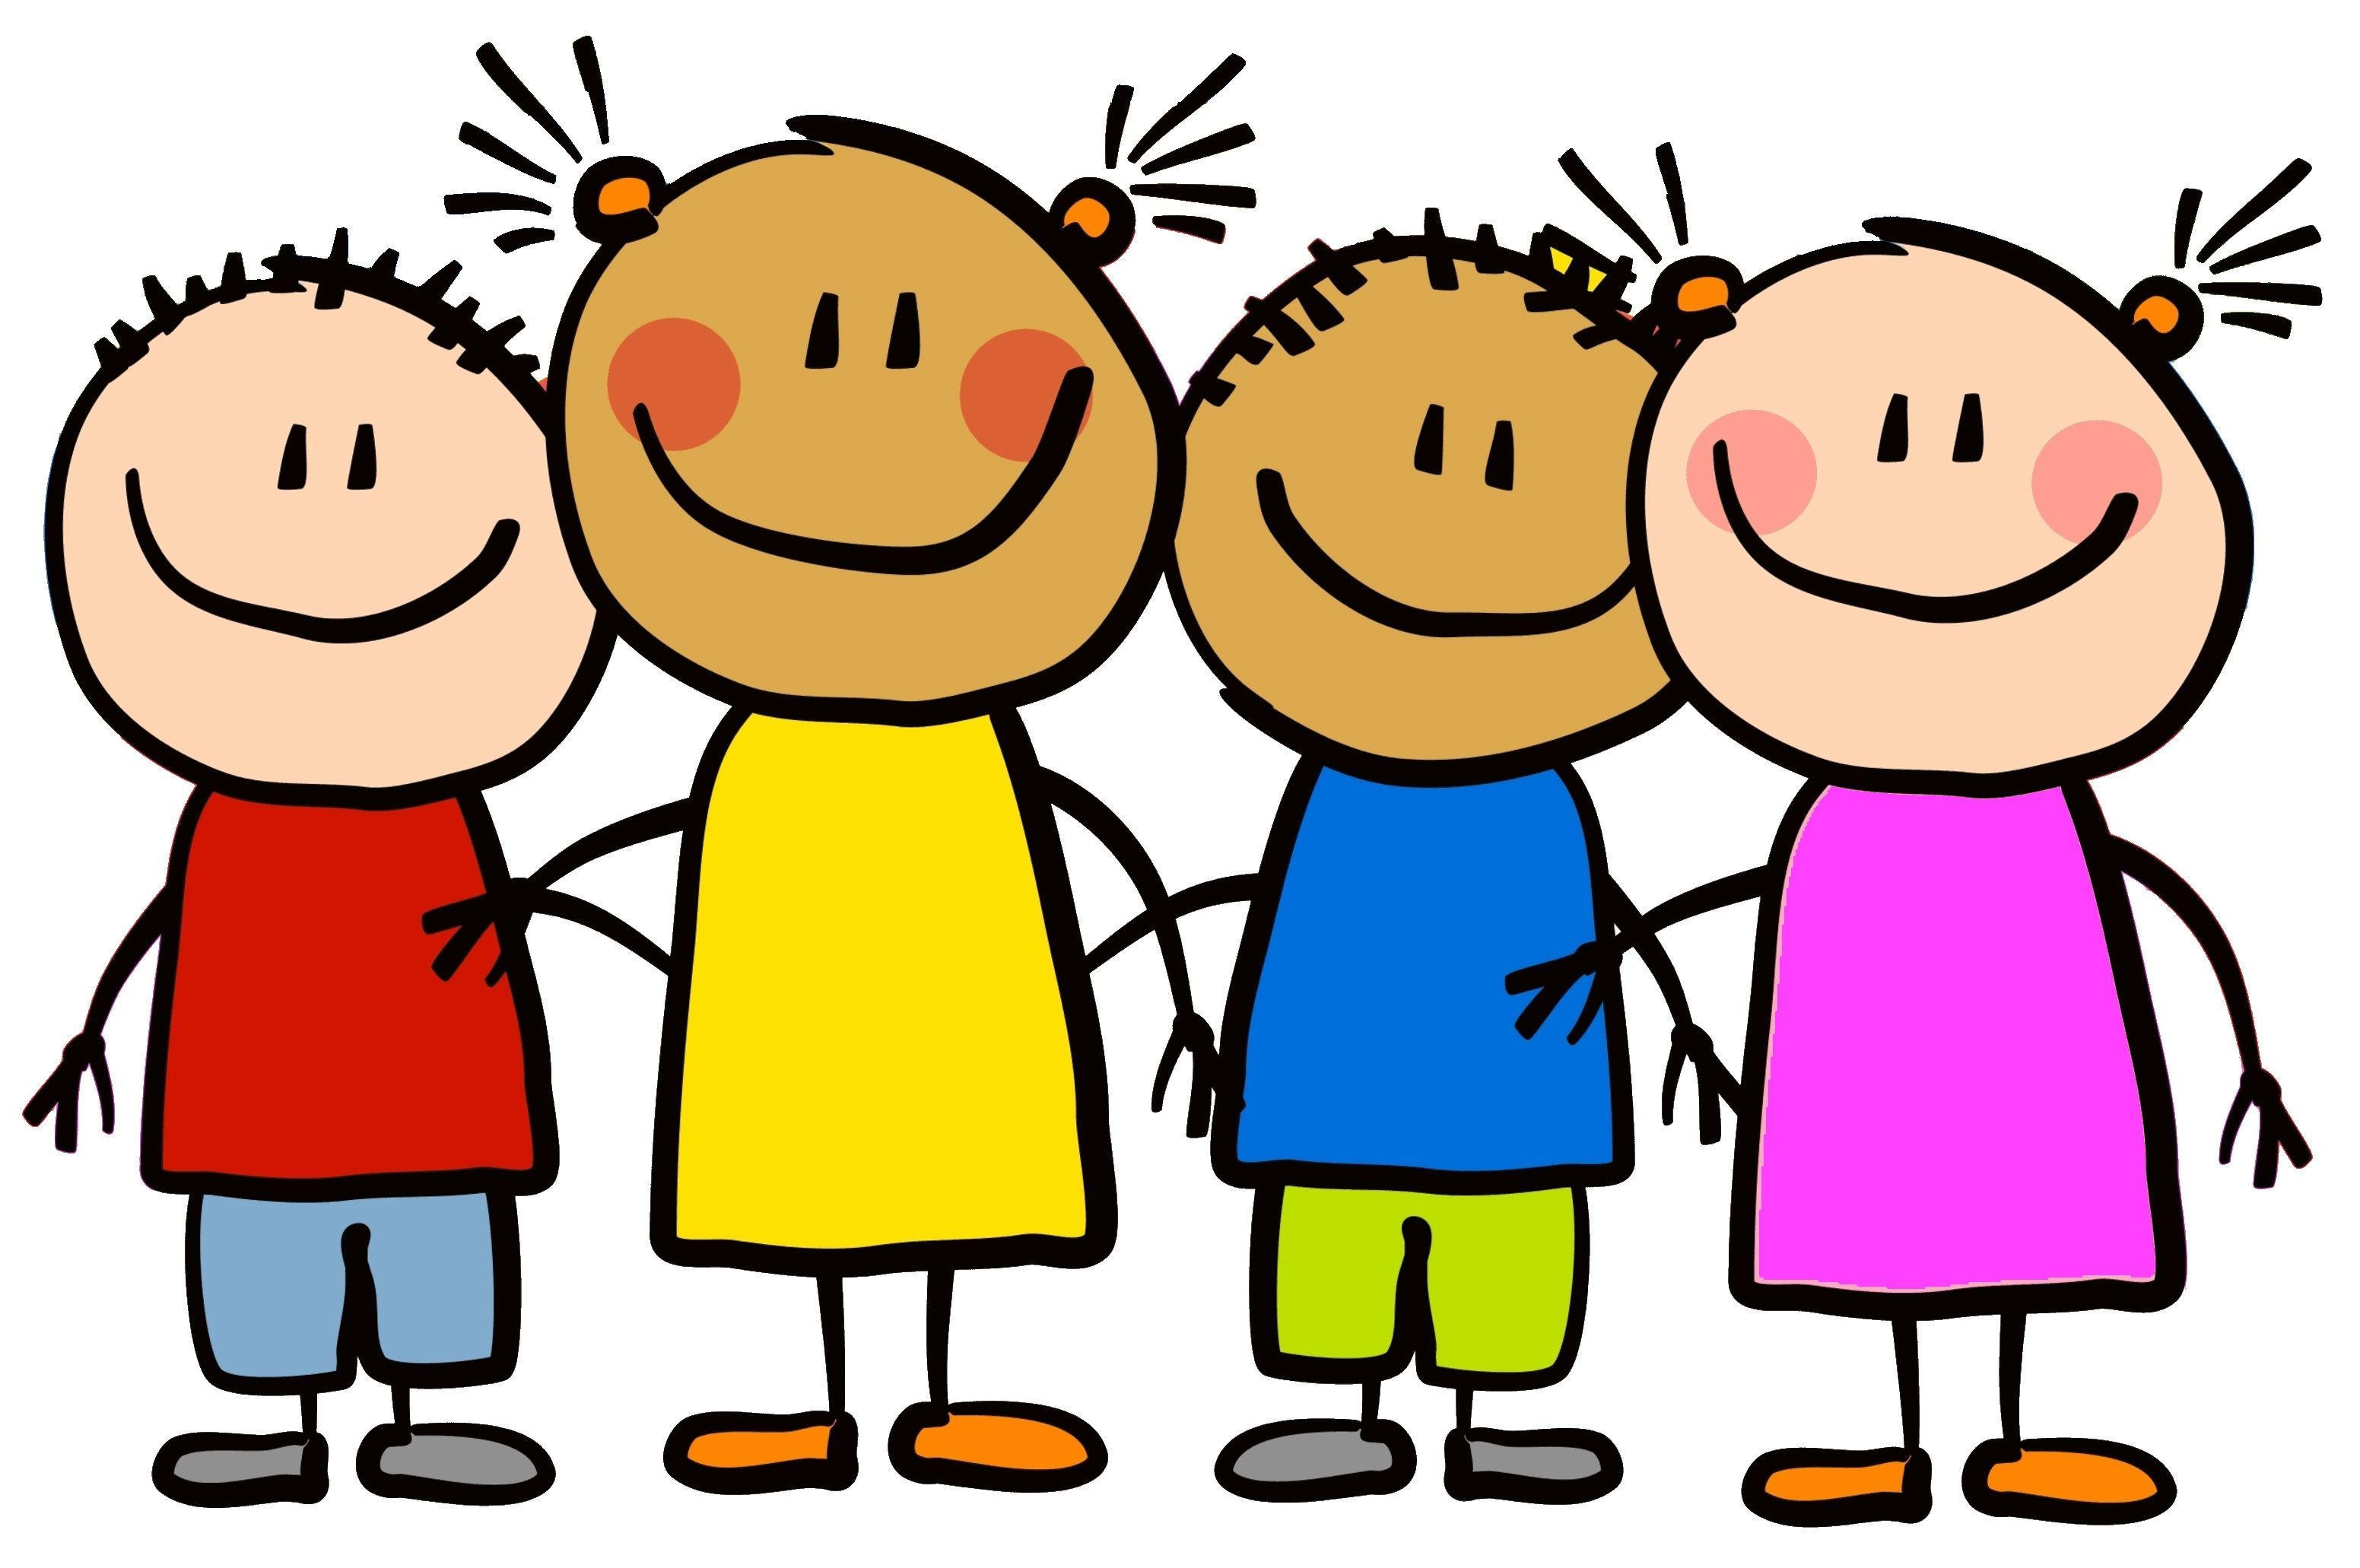 3103x2062 Kindergarten Friends Clipart.jpg Clipart For Cards